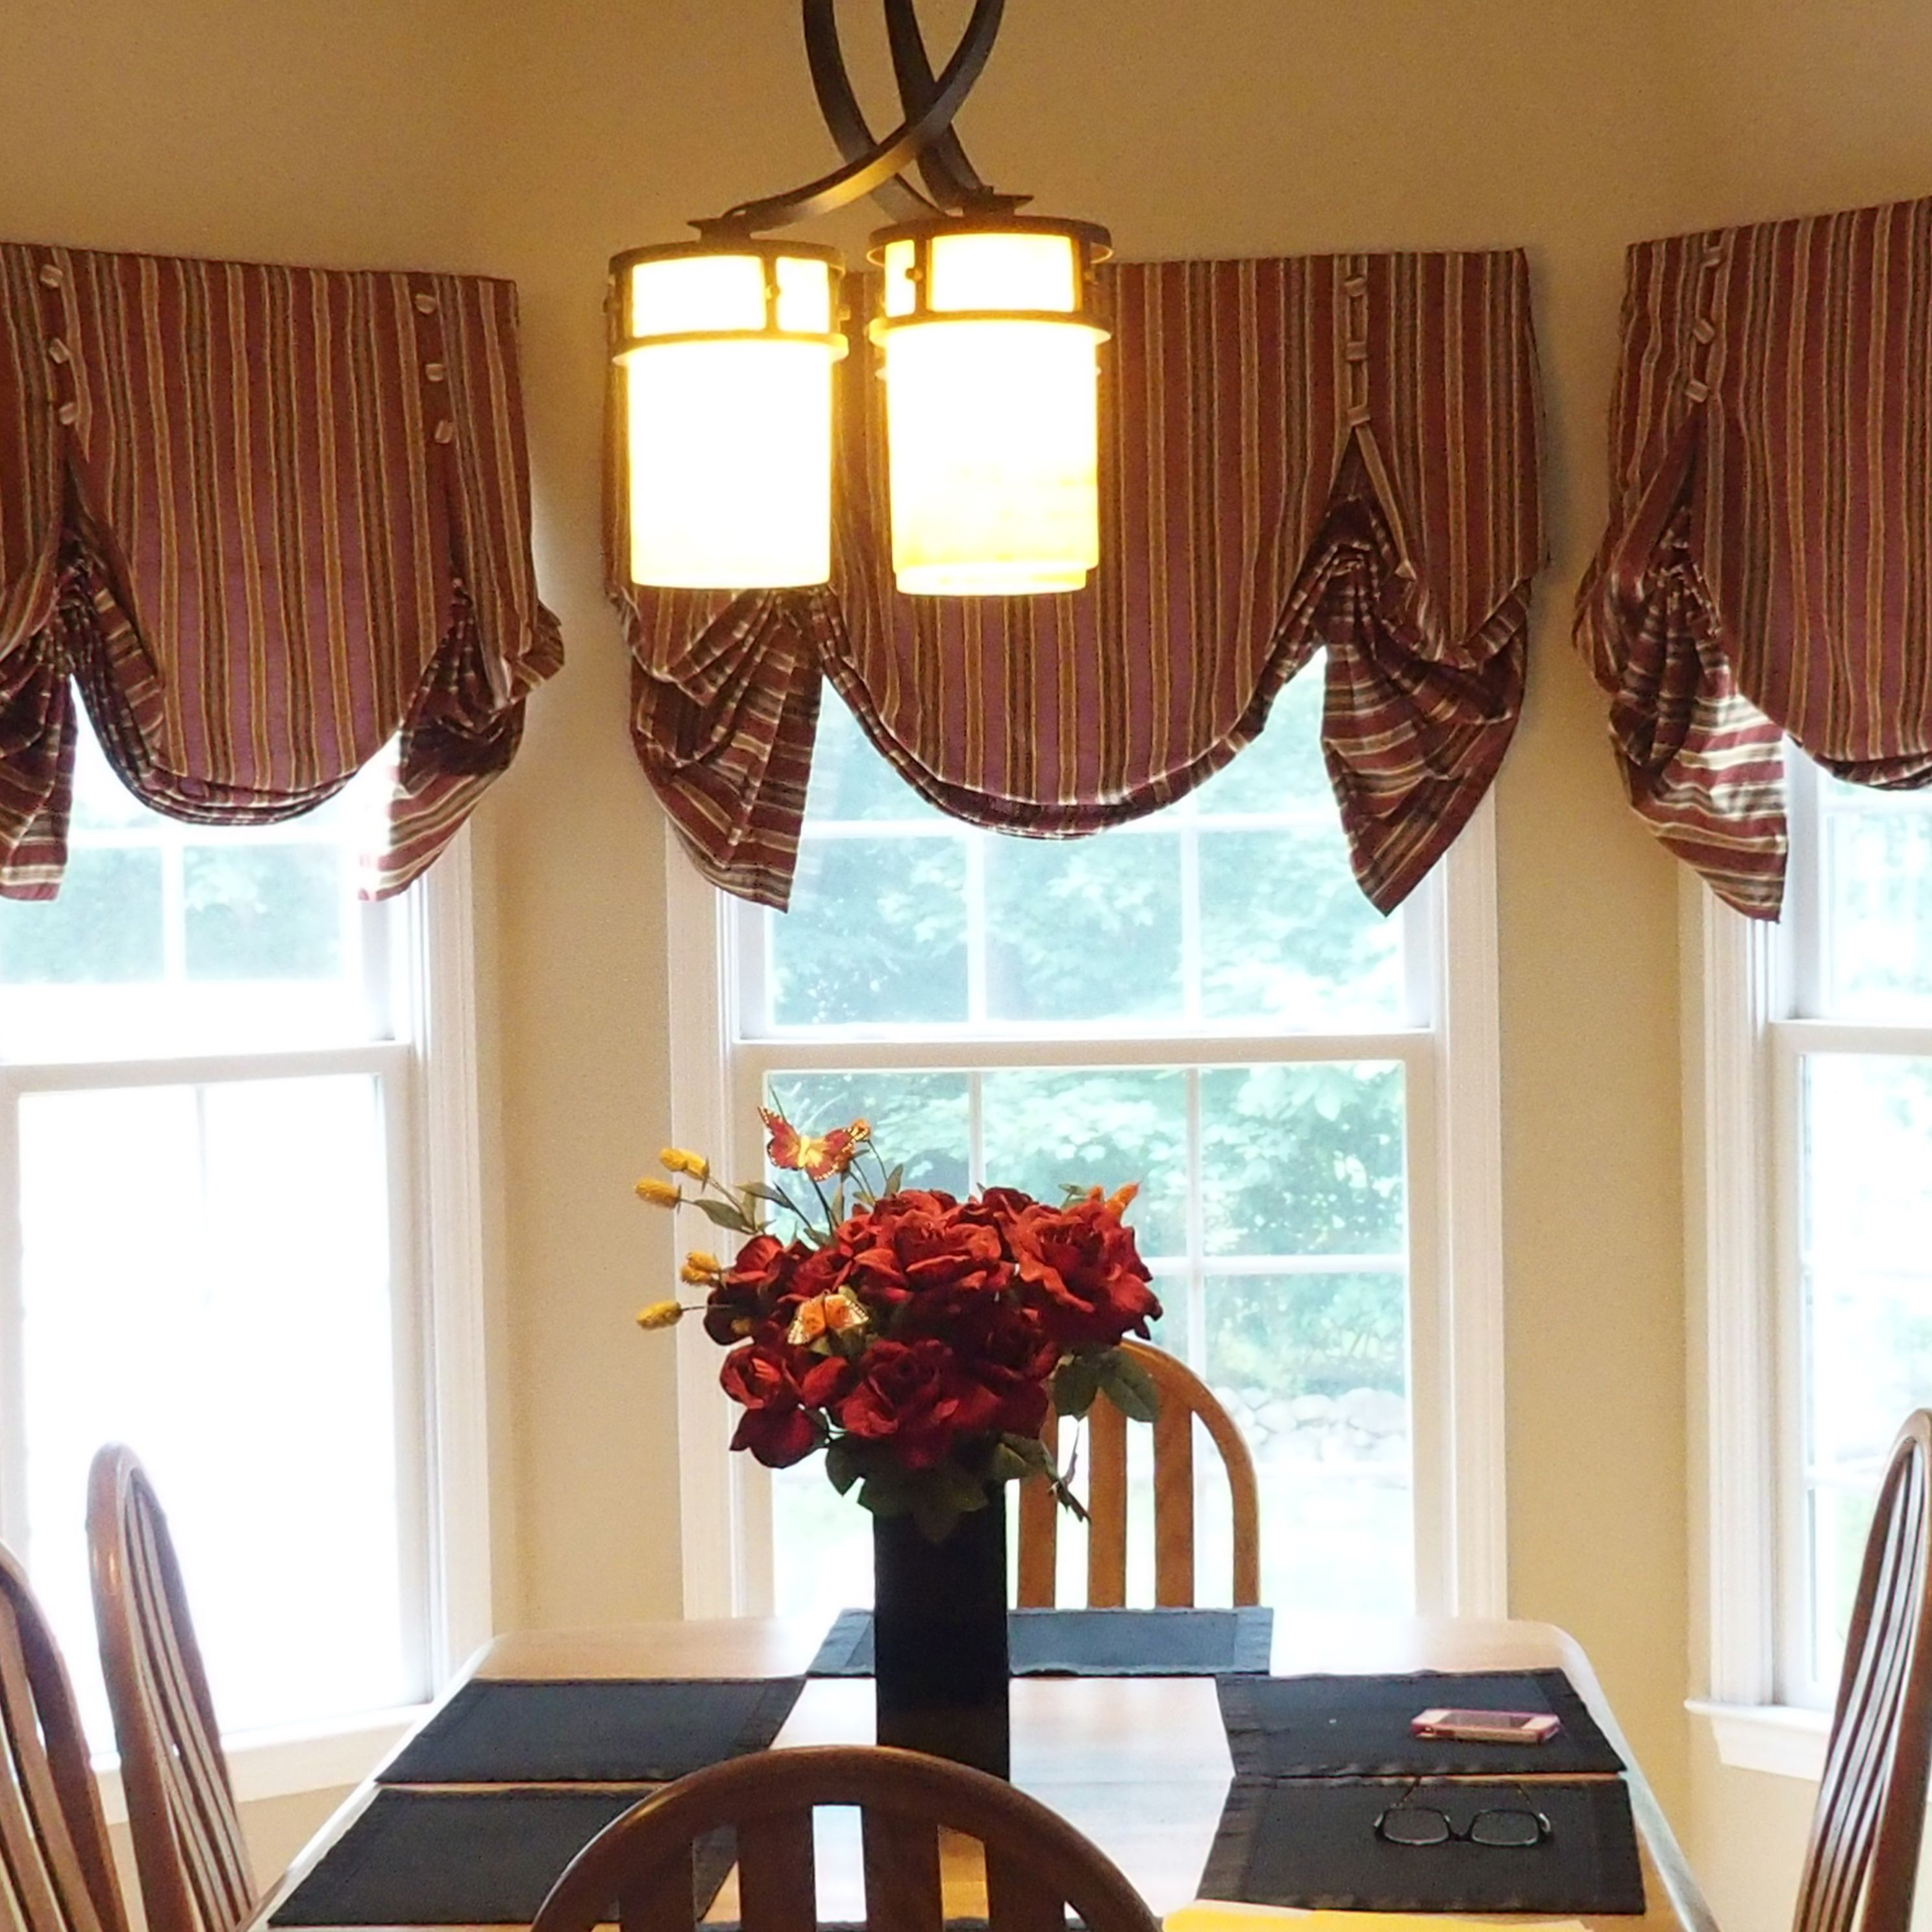 Dining room window coverings  pin by curtain call on london shades on bay windows in a kitchen